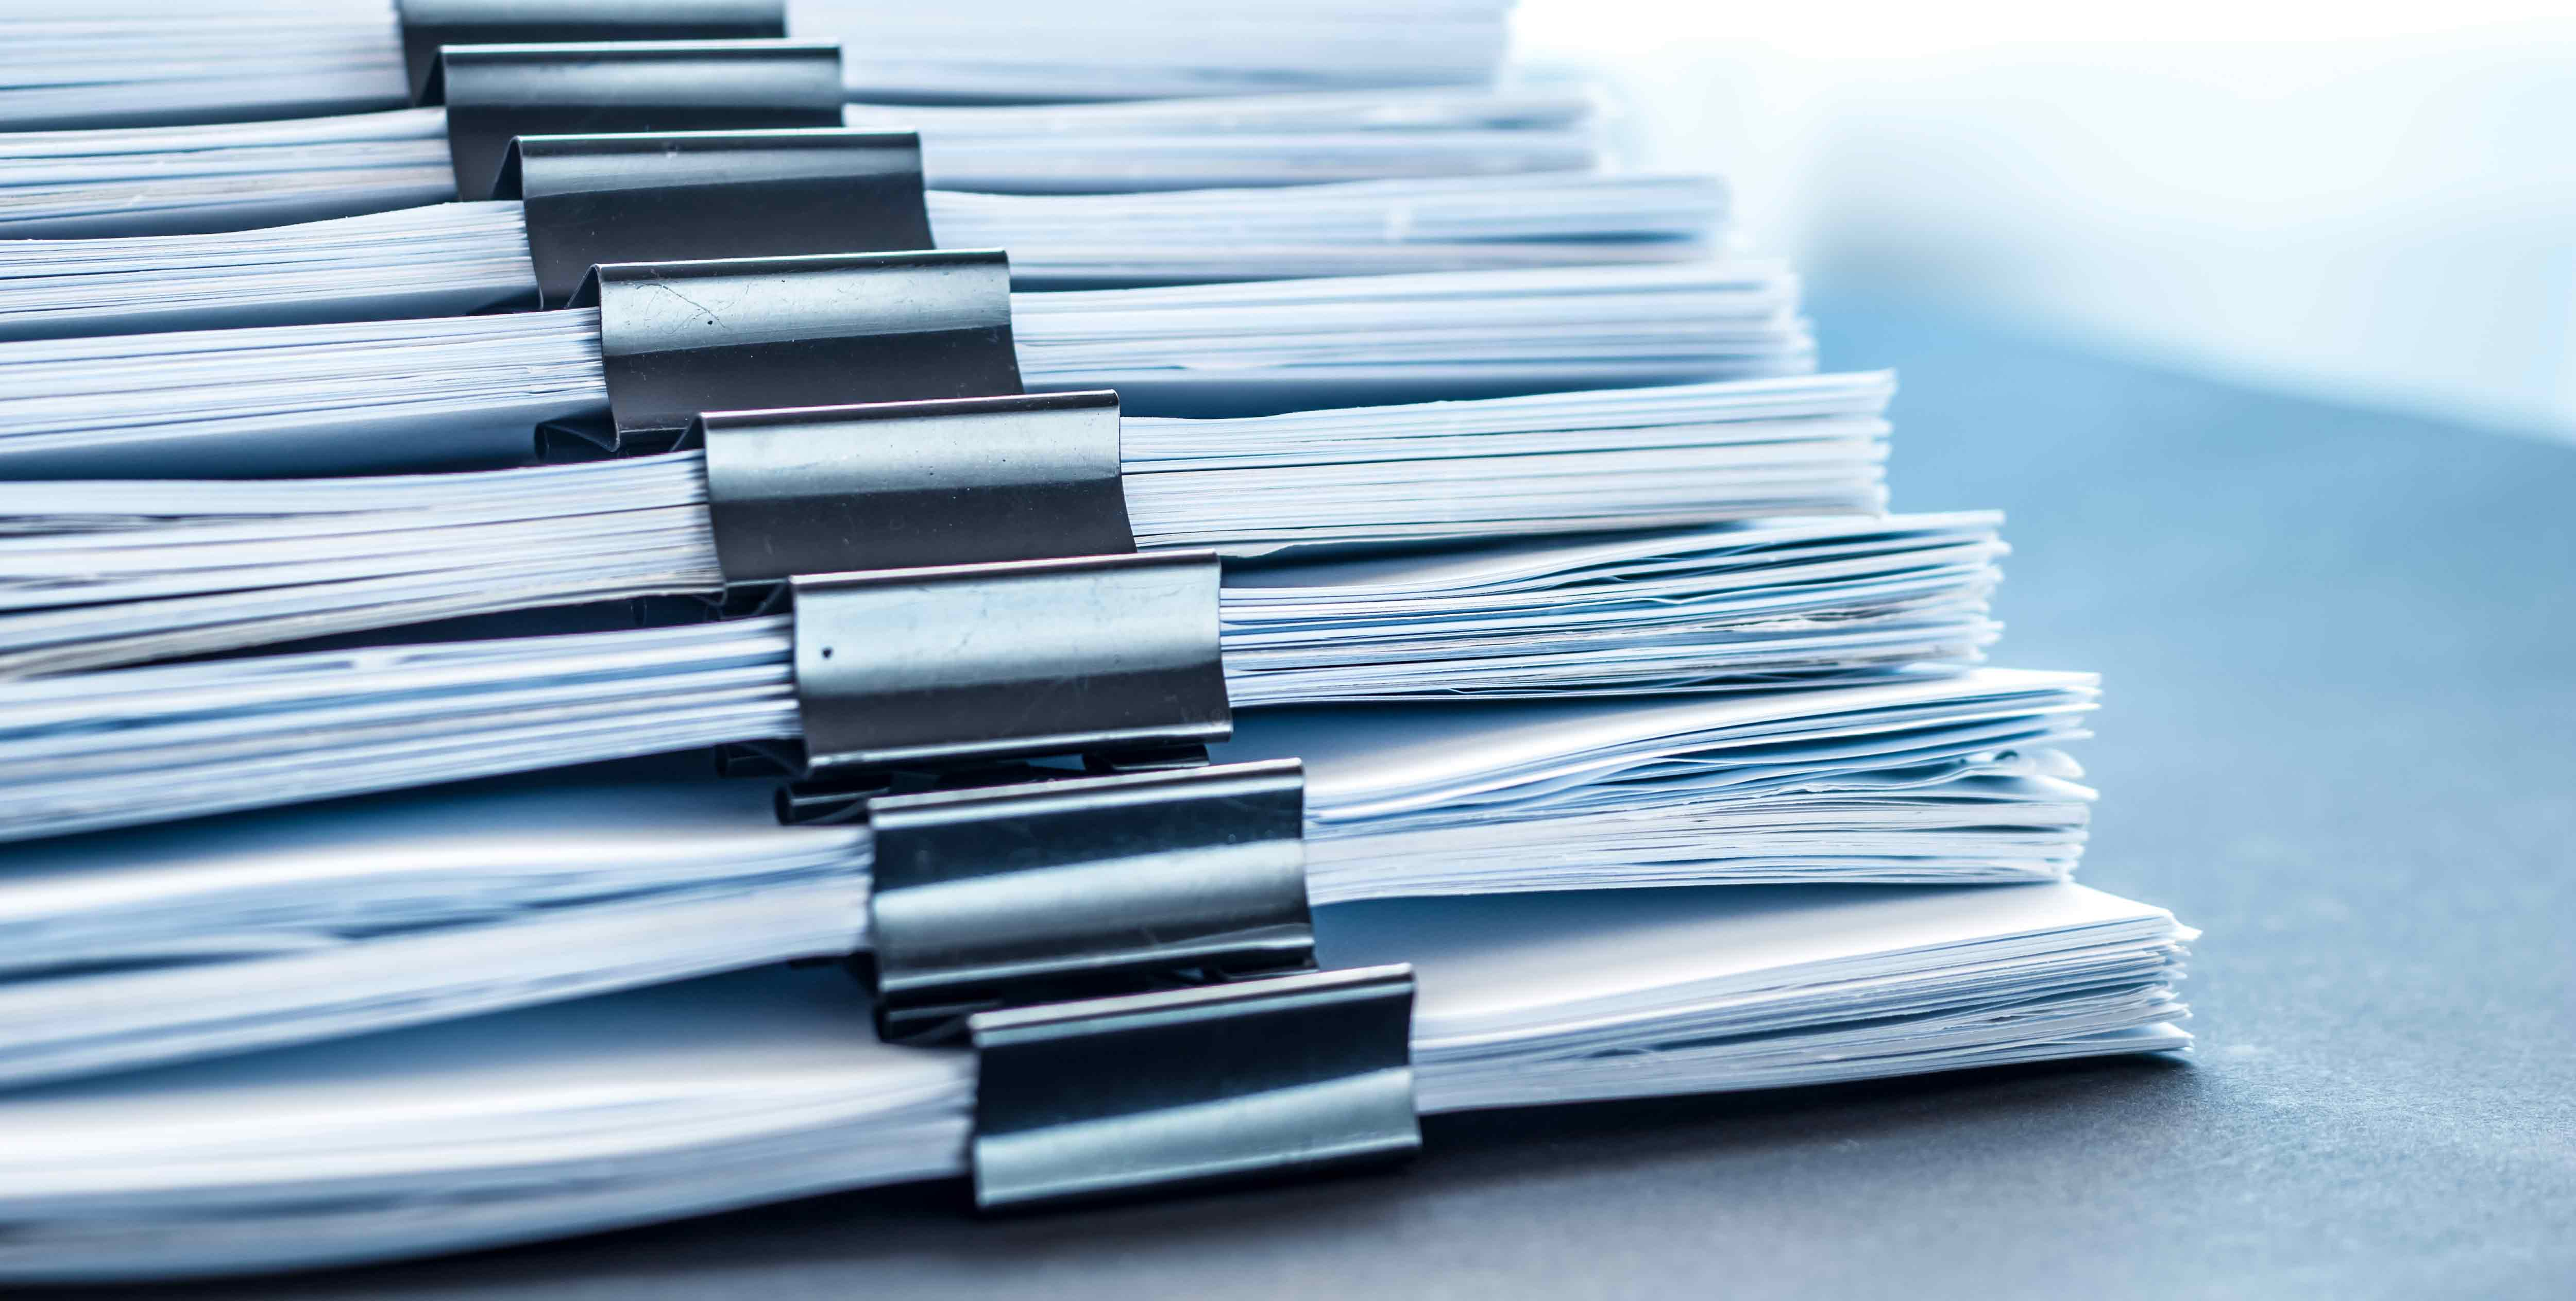 stacks-documents-files-with-black-clip